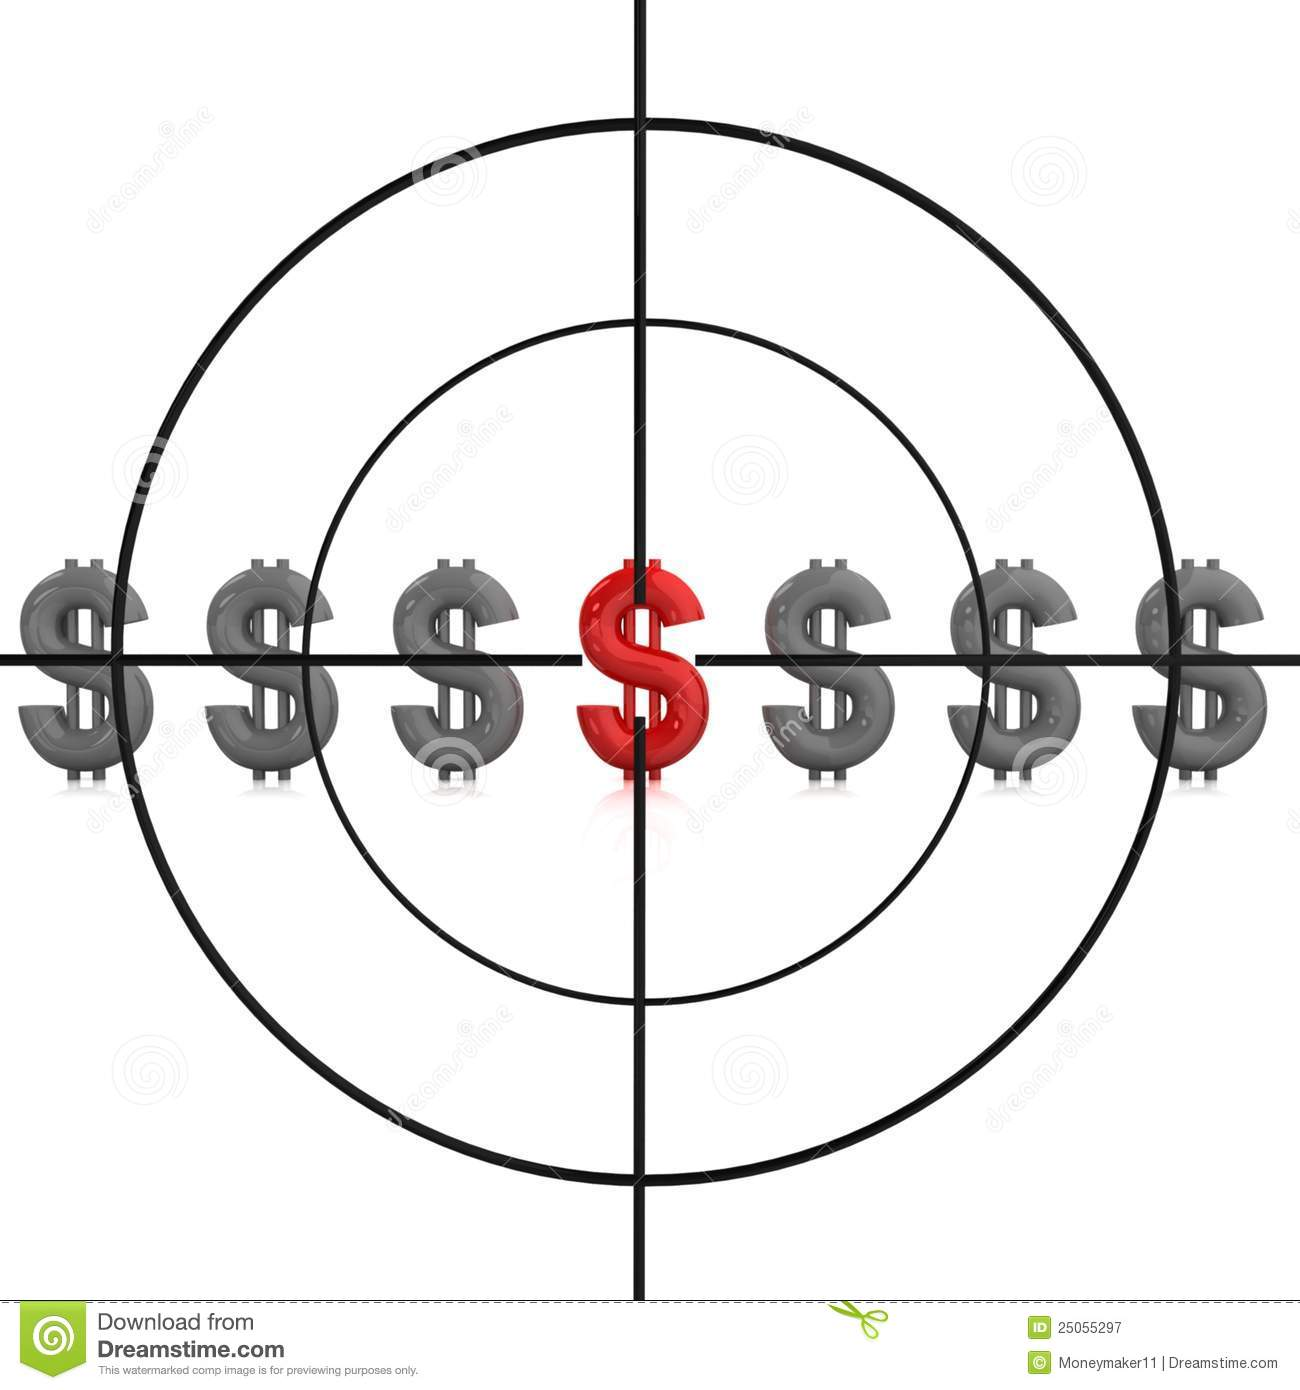 Cerebrovascular moreover 98no2 1 also US8005706 in addition Nephrectomy besides Royalty Free Stock Photography Sniper Target Dollar Sign Image25055297. on risk management concept map